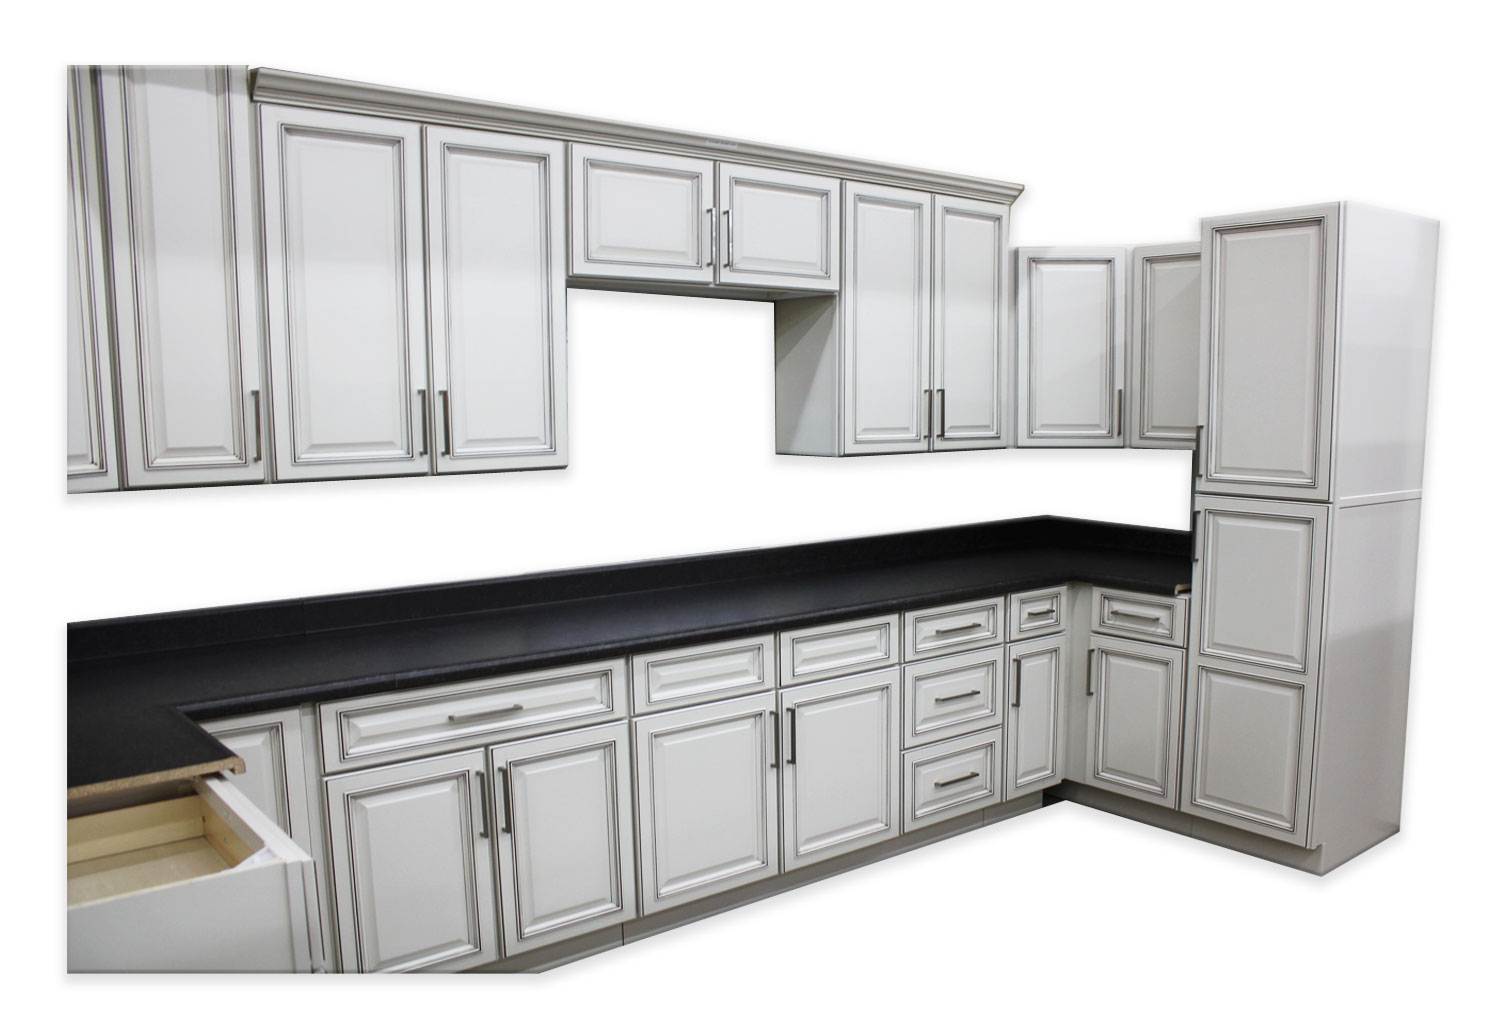 manchester_white_kitchen_cabinets.jpg